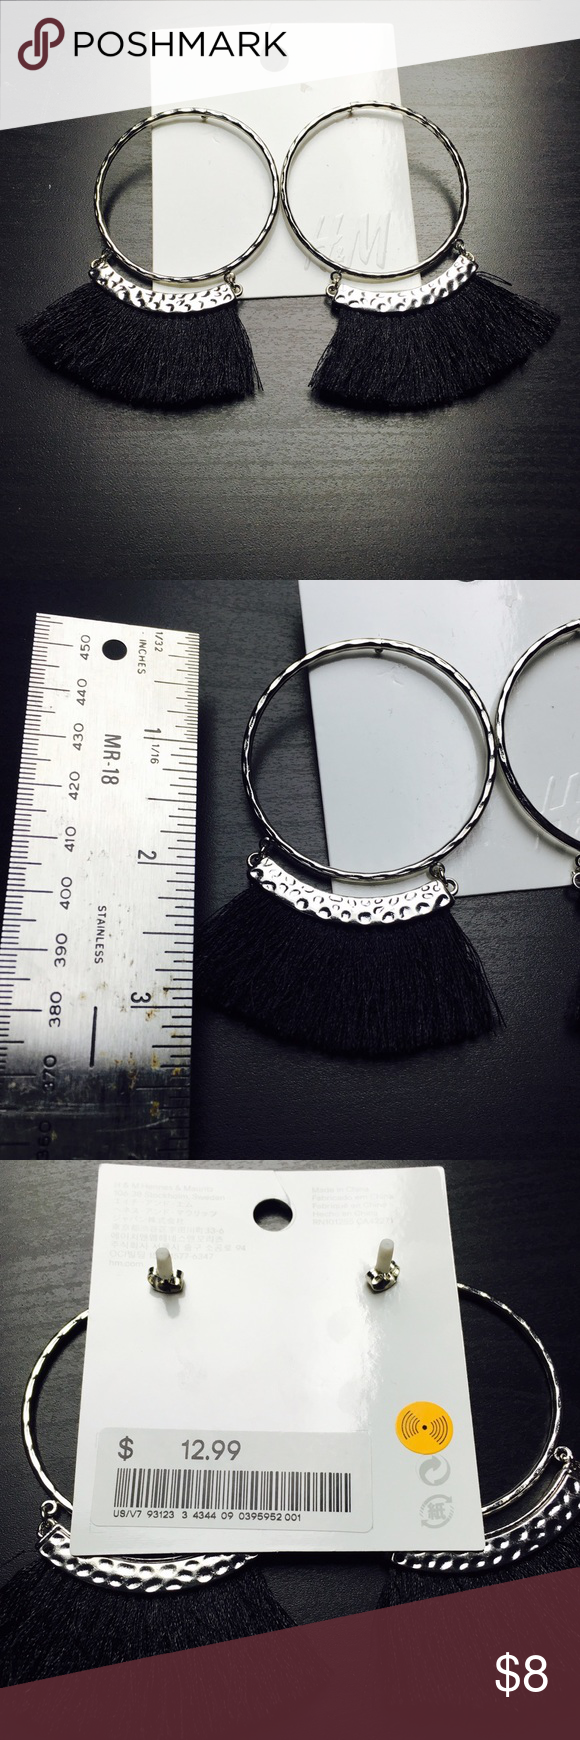 Fun Black Fringe Silver Tone Hoop Post Earrings These are brand new never worn super fun Earrings! Perfect add on to get 20% off your bundle! H&M Jewelry Earrings